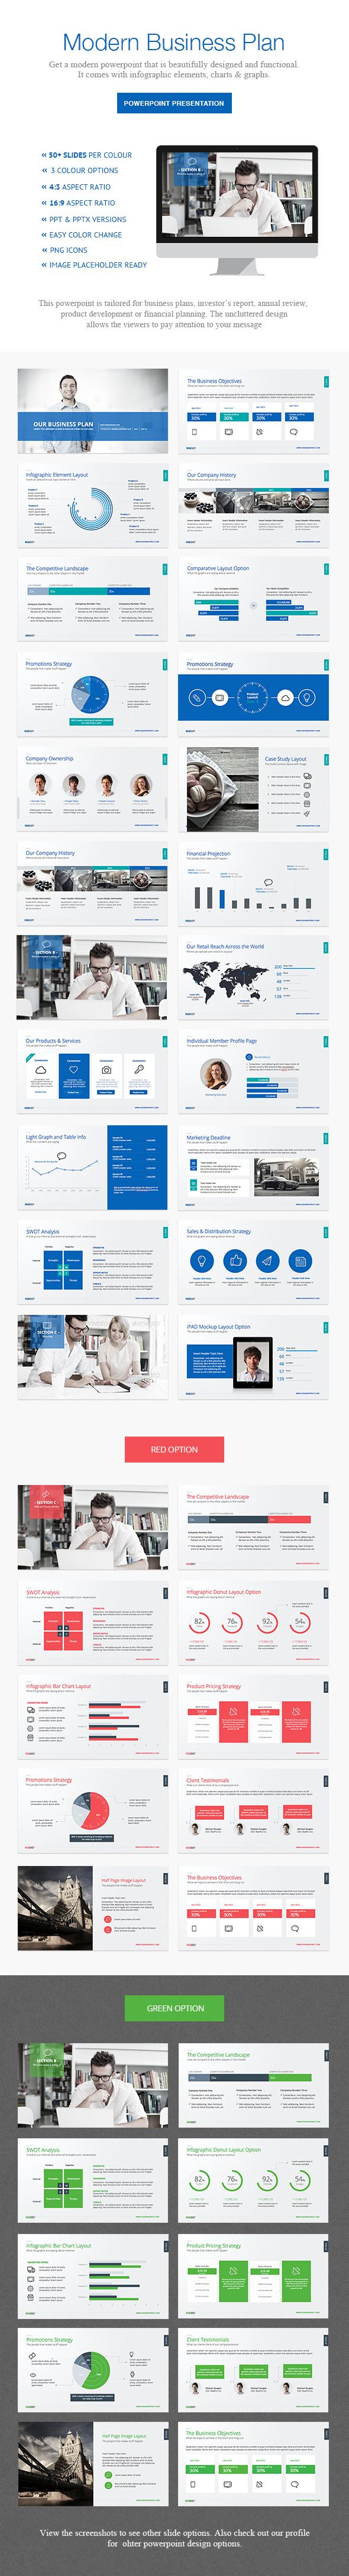 Business Plan Powerpoint - Business PowerPoint Templates Download here: https://graphicriver.net/item/business-plan-powerpoint/6098844?ref=Classicdesignp